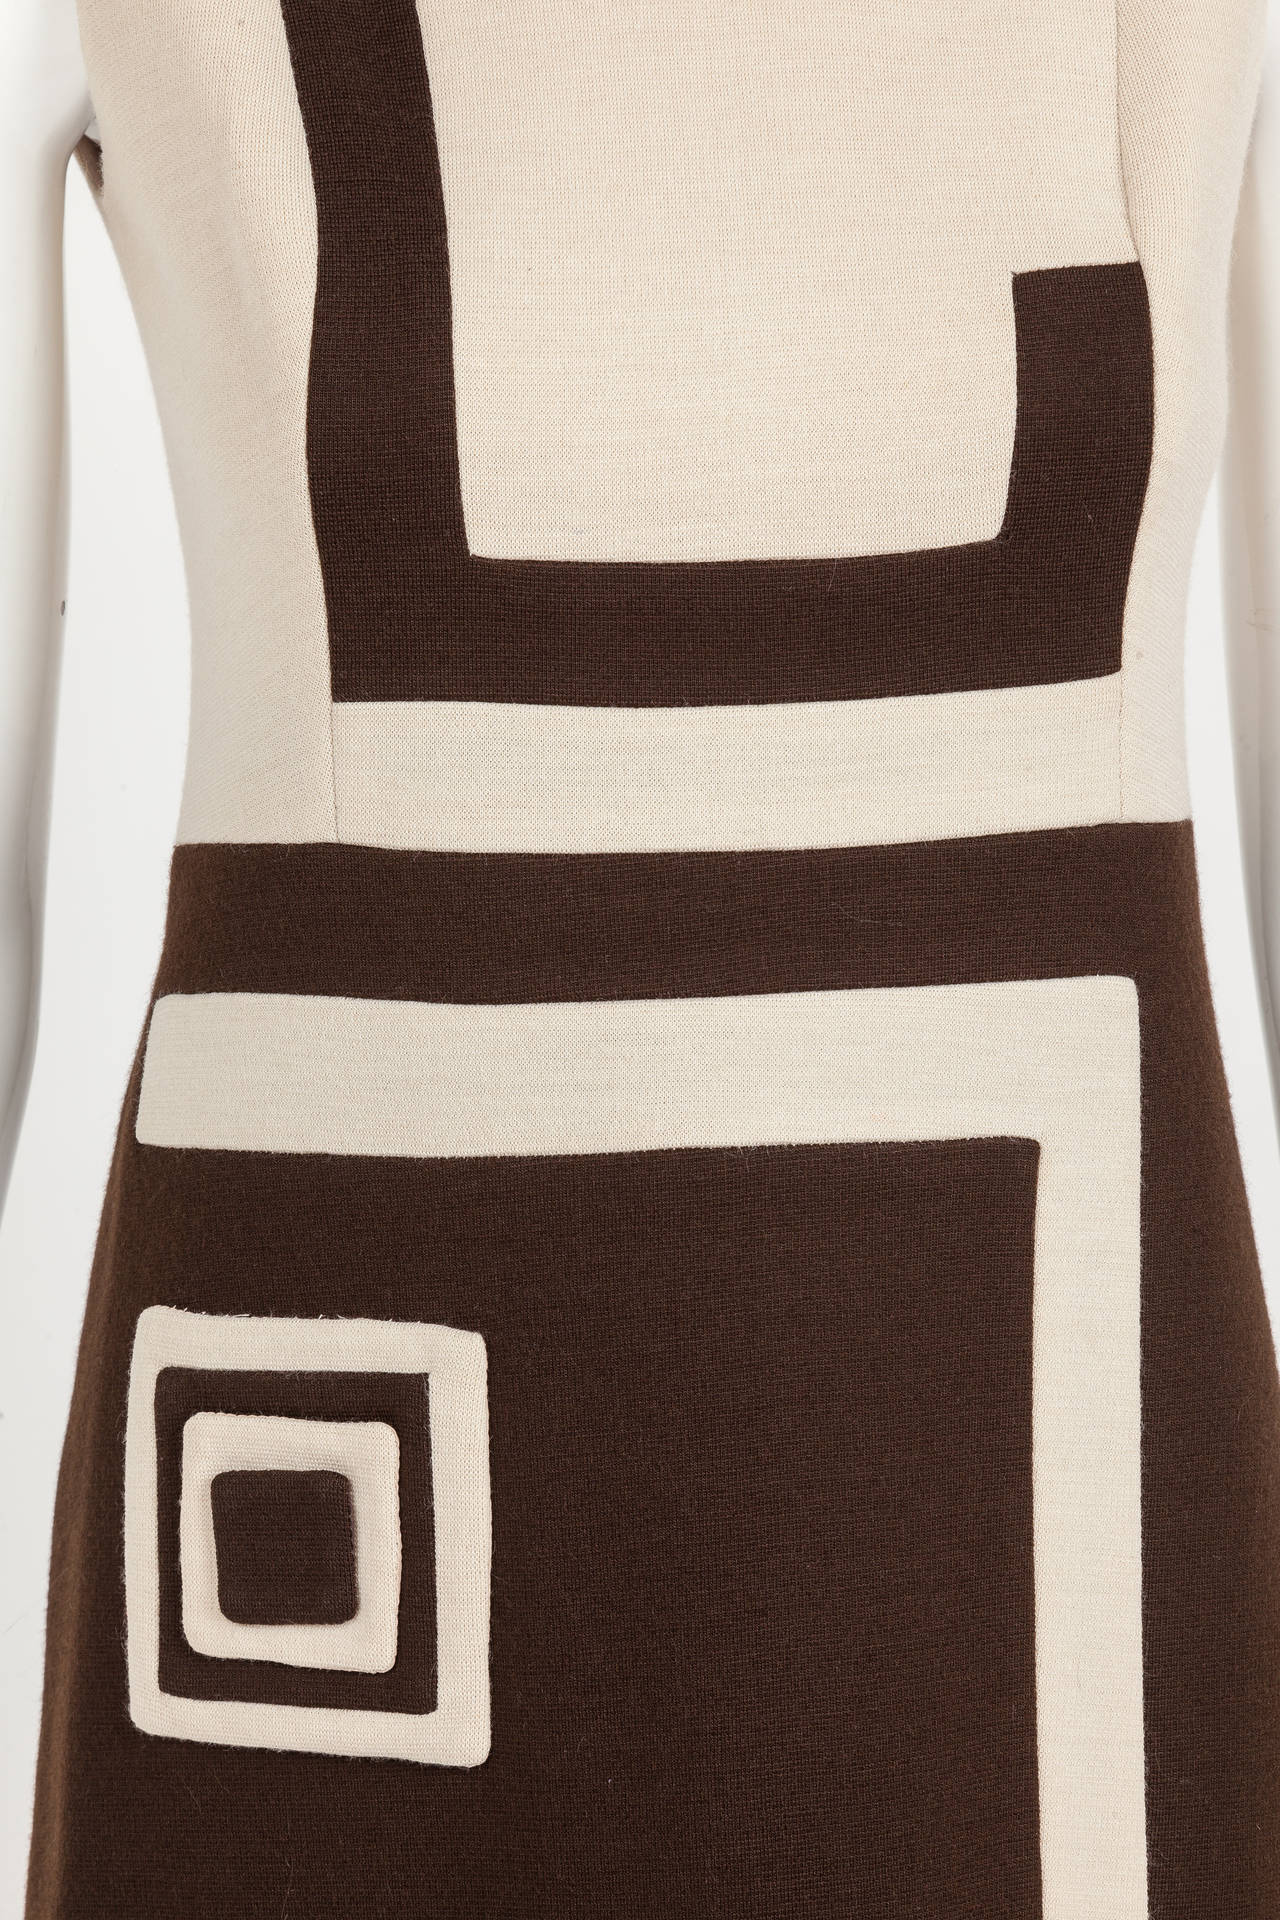 1970s Pierre Cardin Mod Graphic Jersey Wool Day Dress In Excellent Condition For Sale In Los Angeles, CA